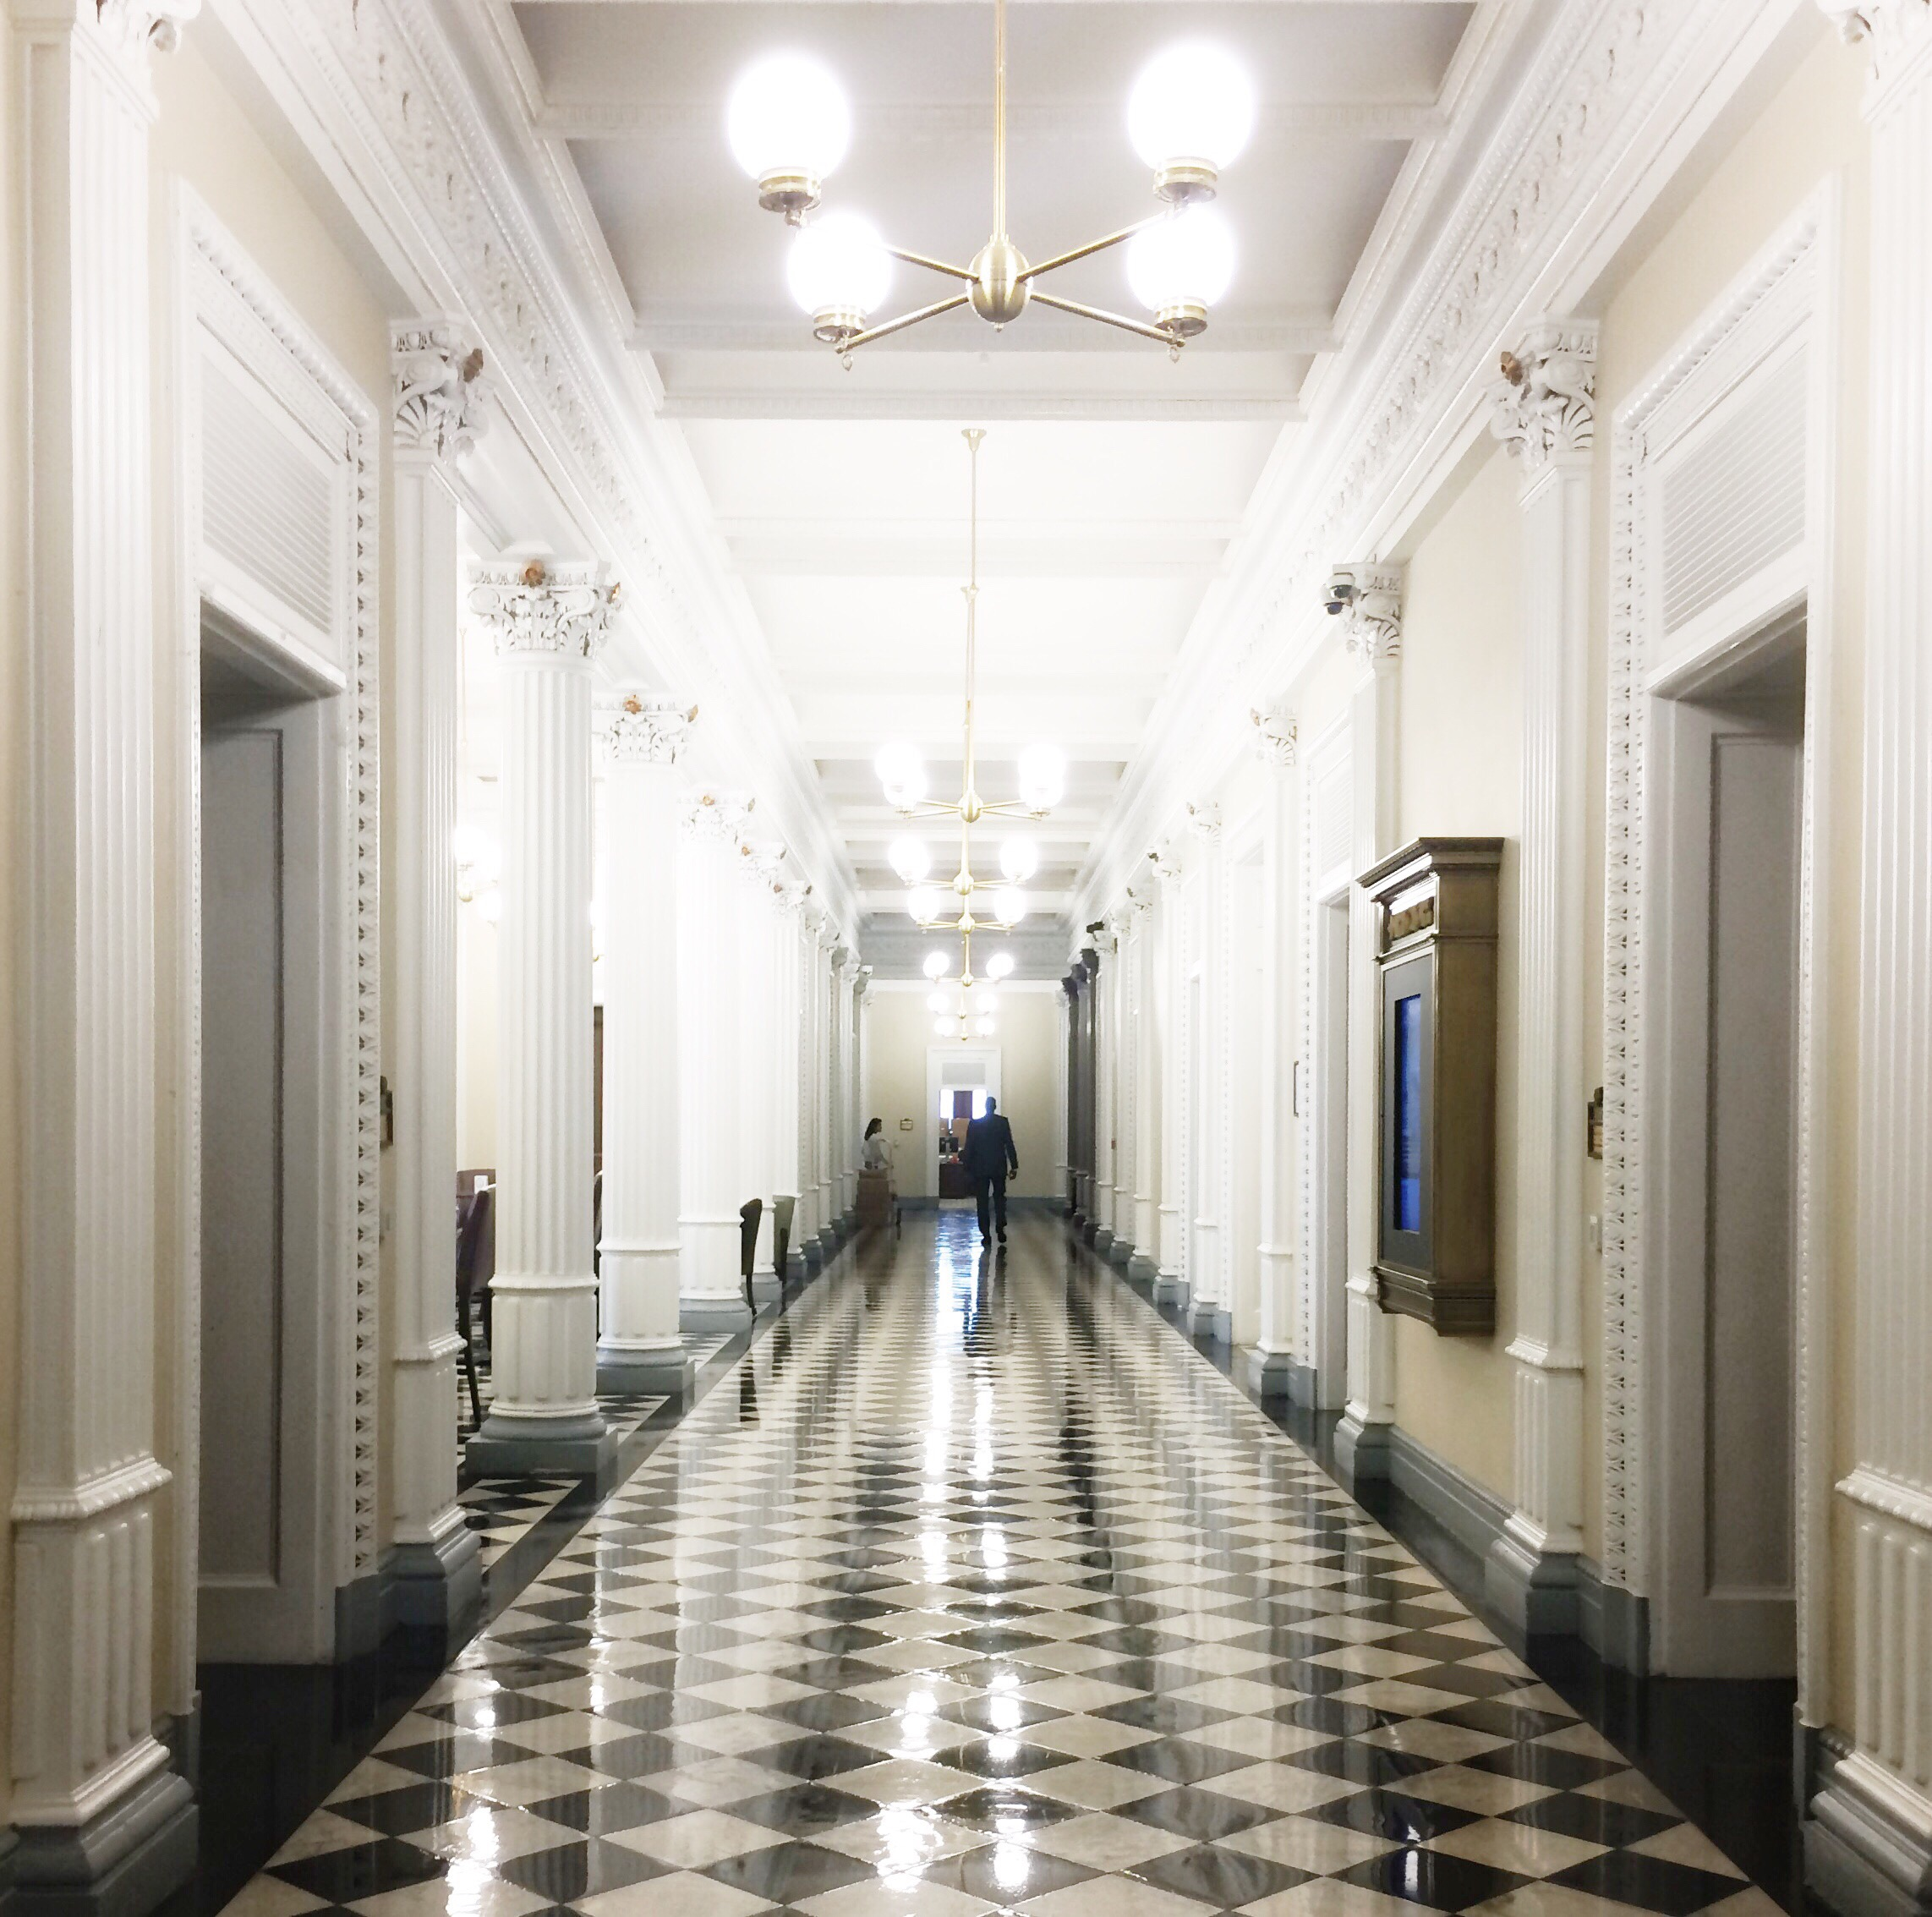 Can't get enough of these beautiful hallways.